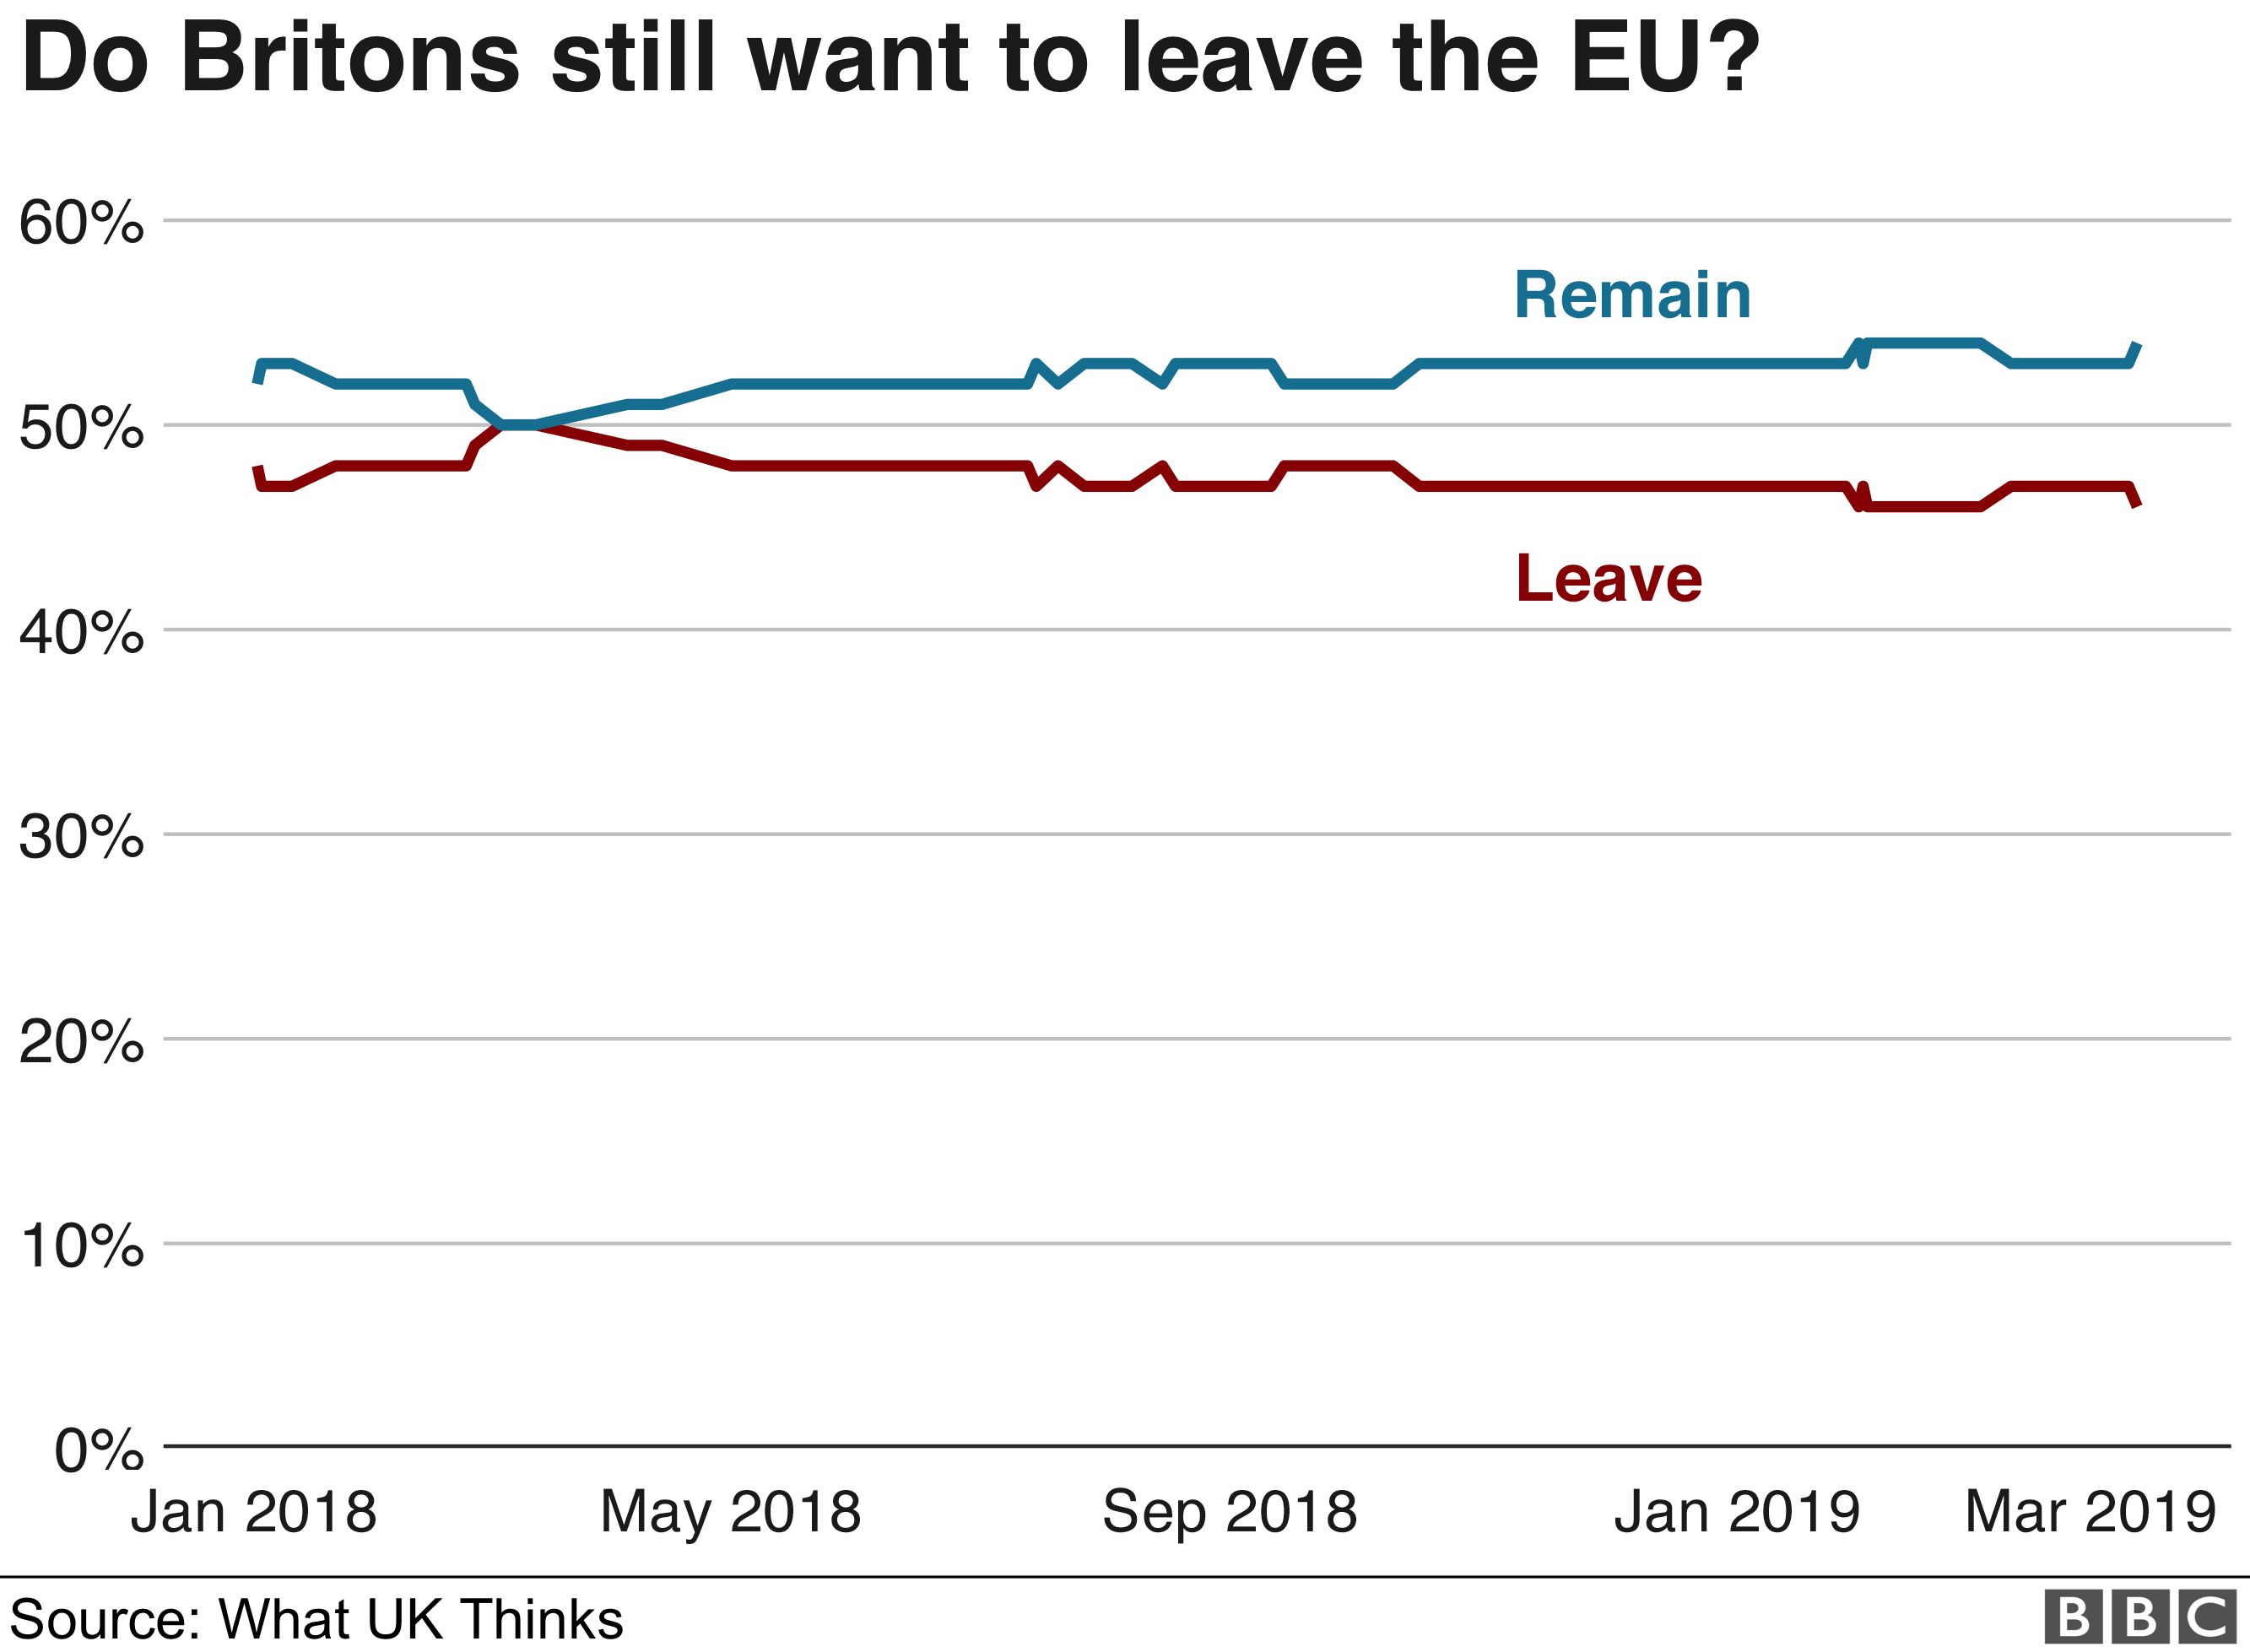 Chart showing support for Remain or Leave